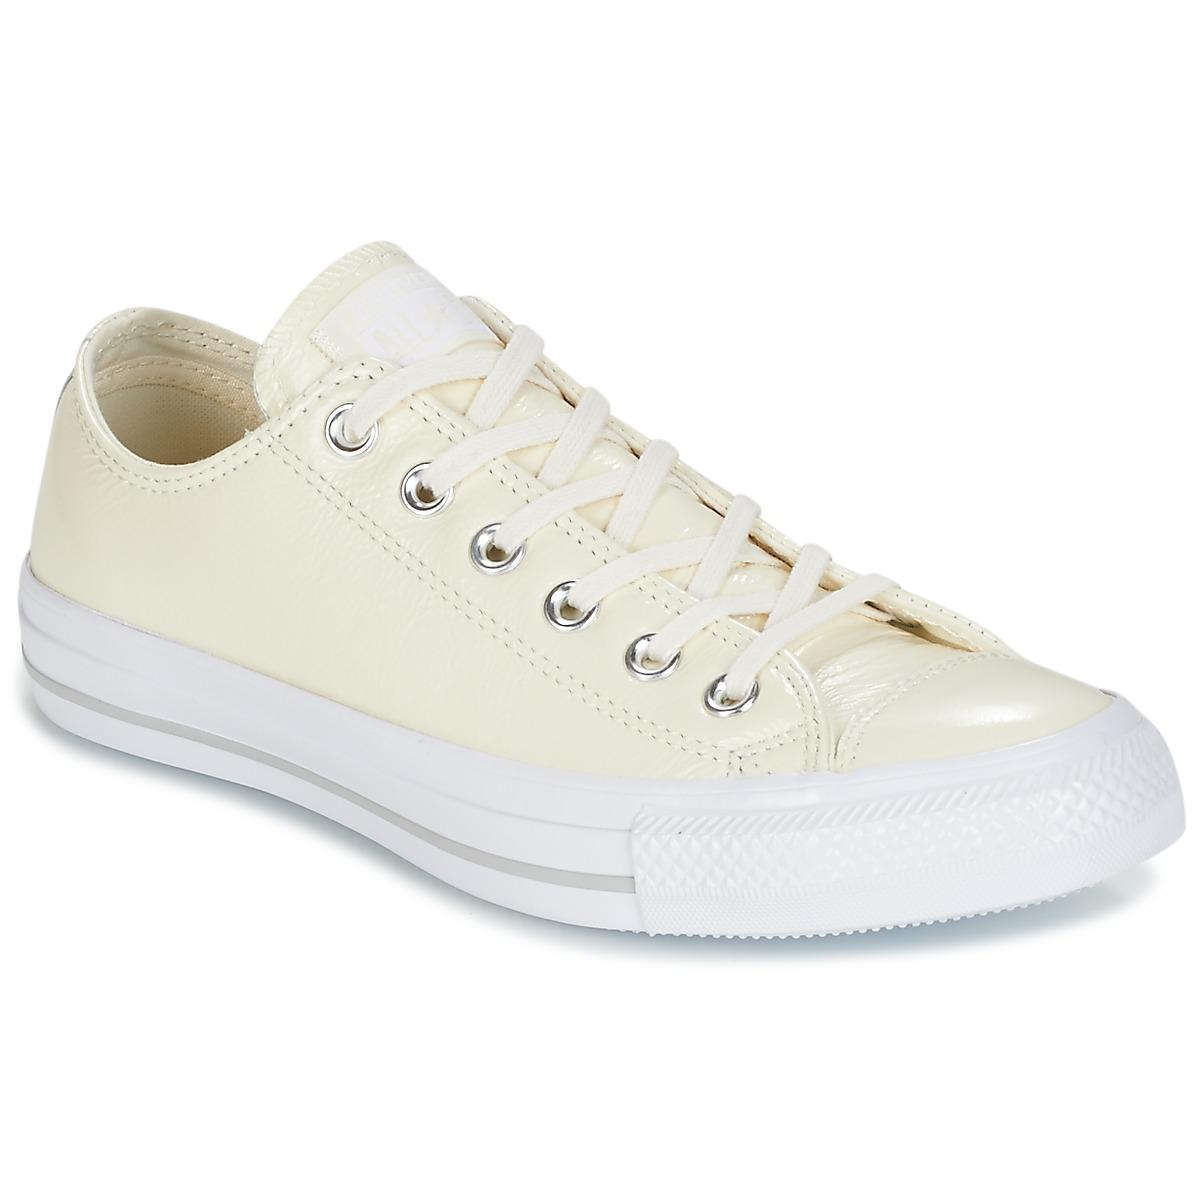 Women's Chuck Taylor® All Star® Crinkle Patent Leather Low Sneakers J1Md4dbSi